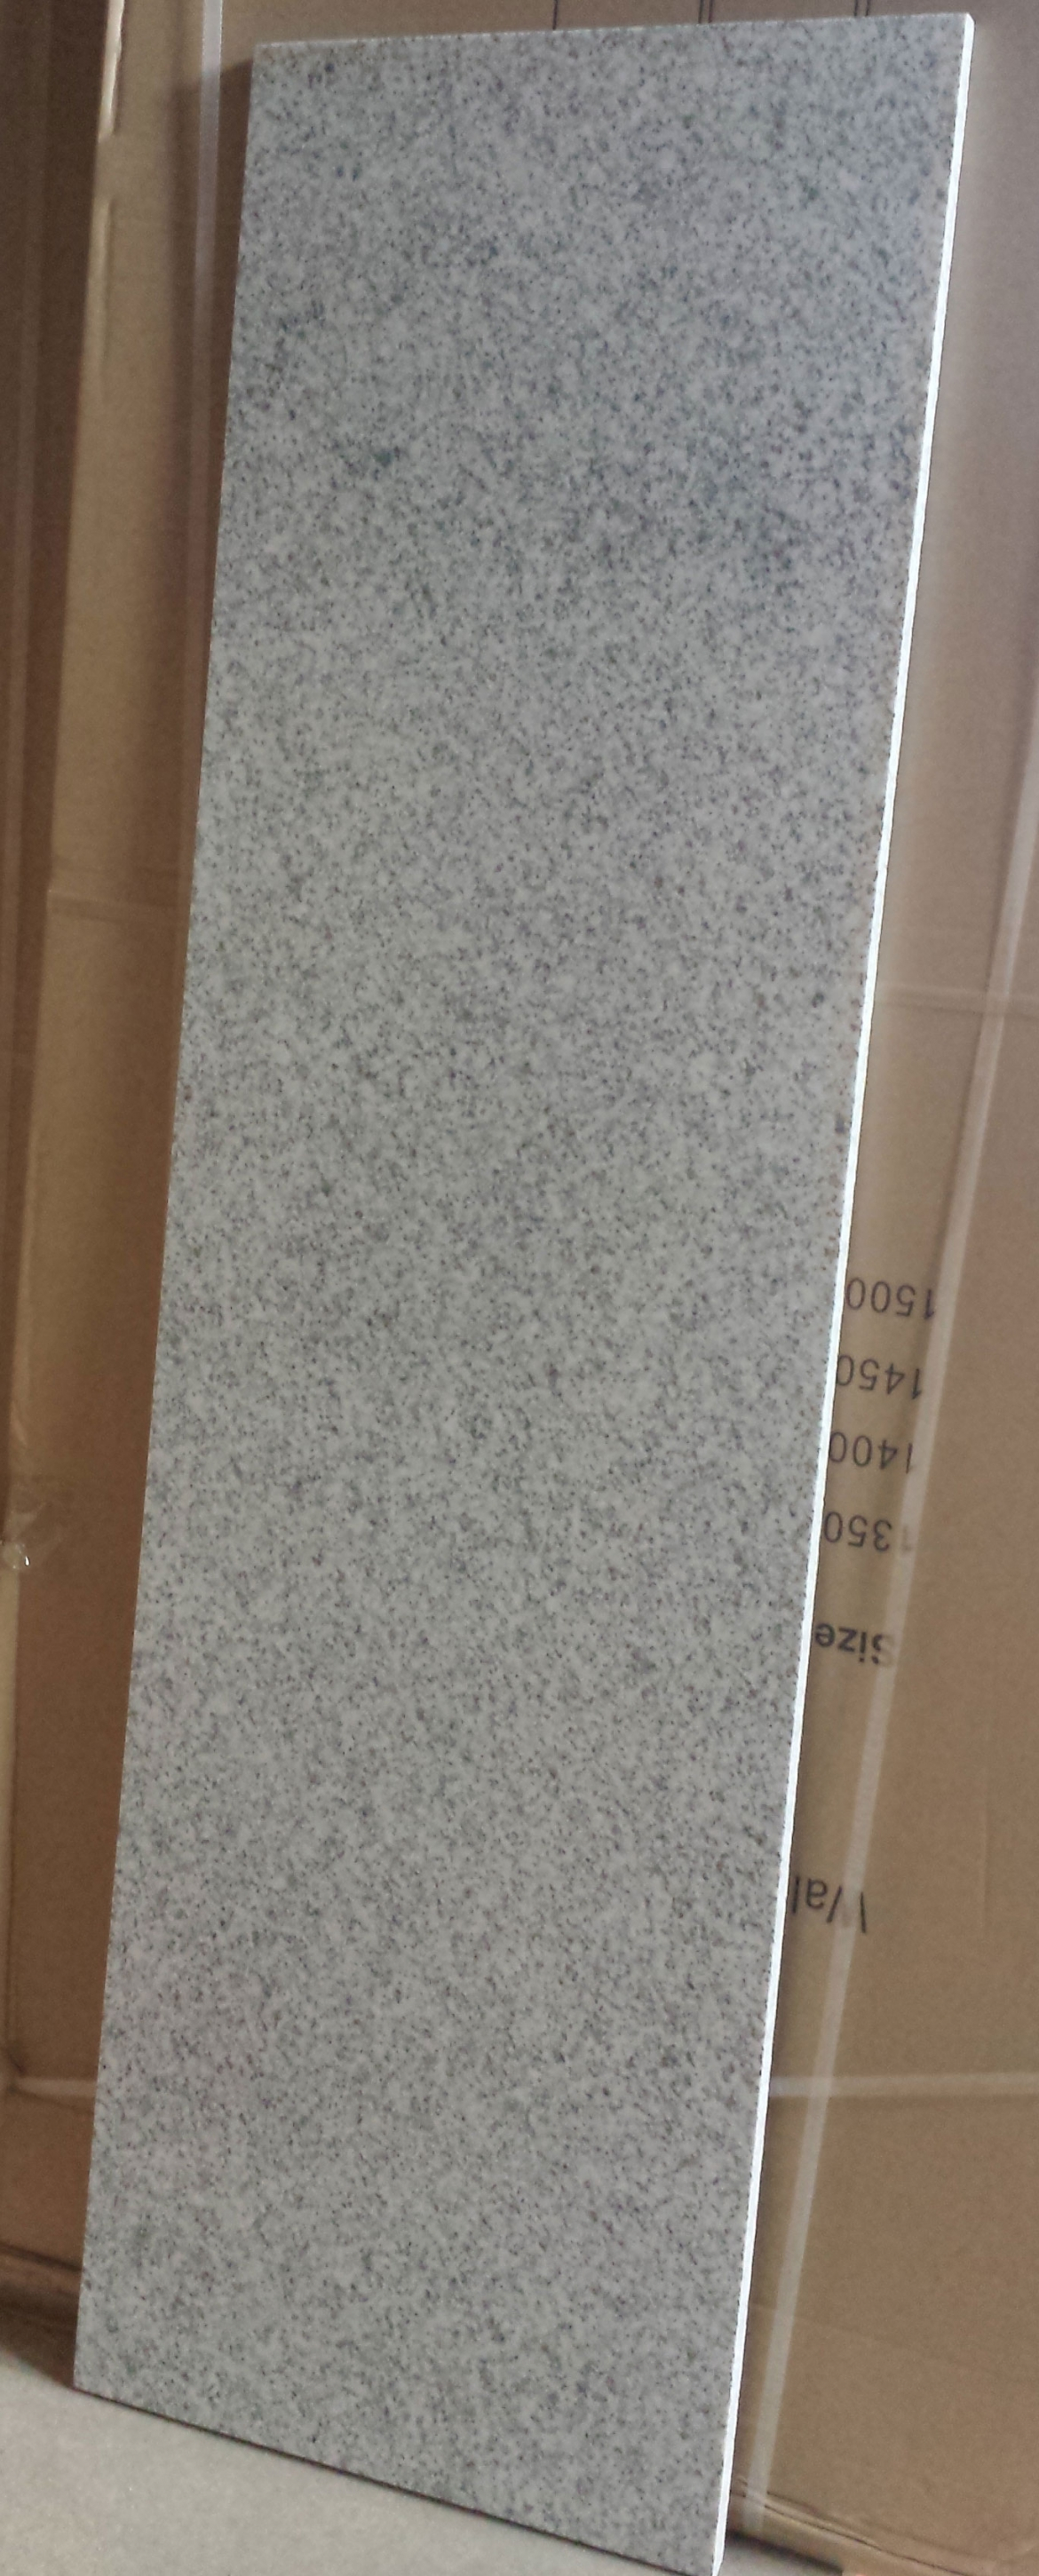 Granite Bench top for bathroom vanity [1500x470x20 mm]